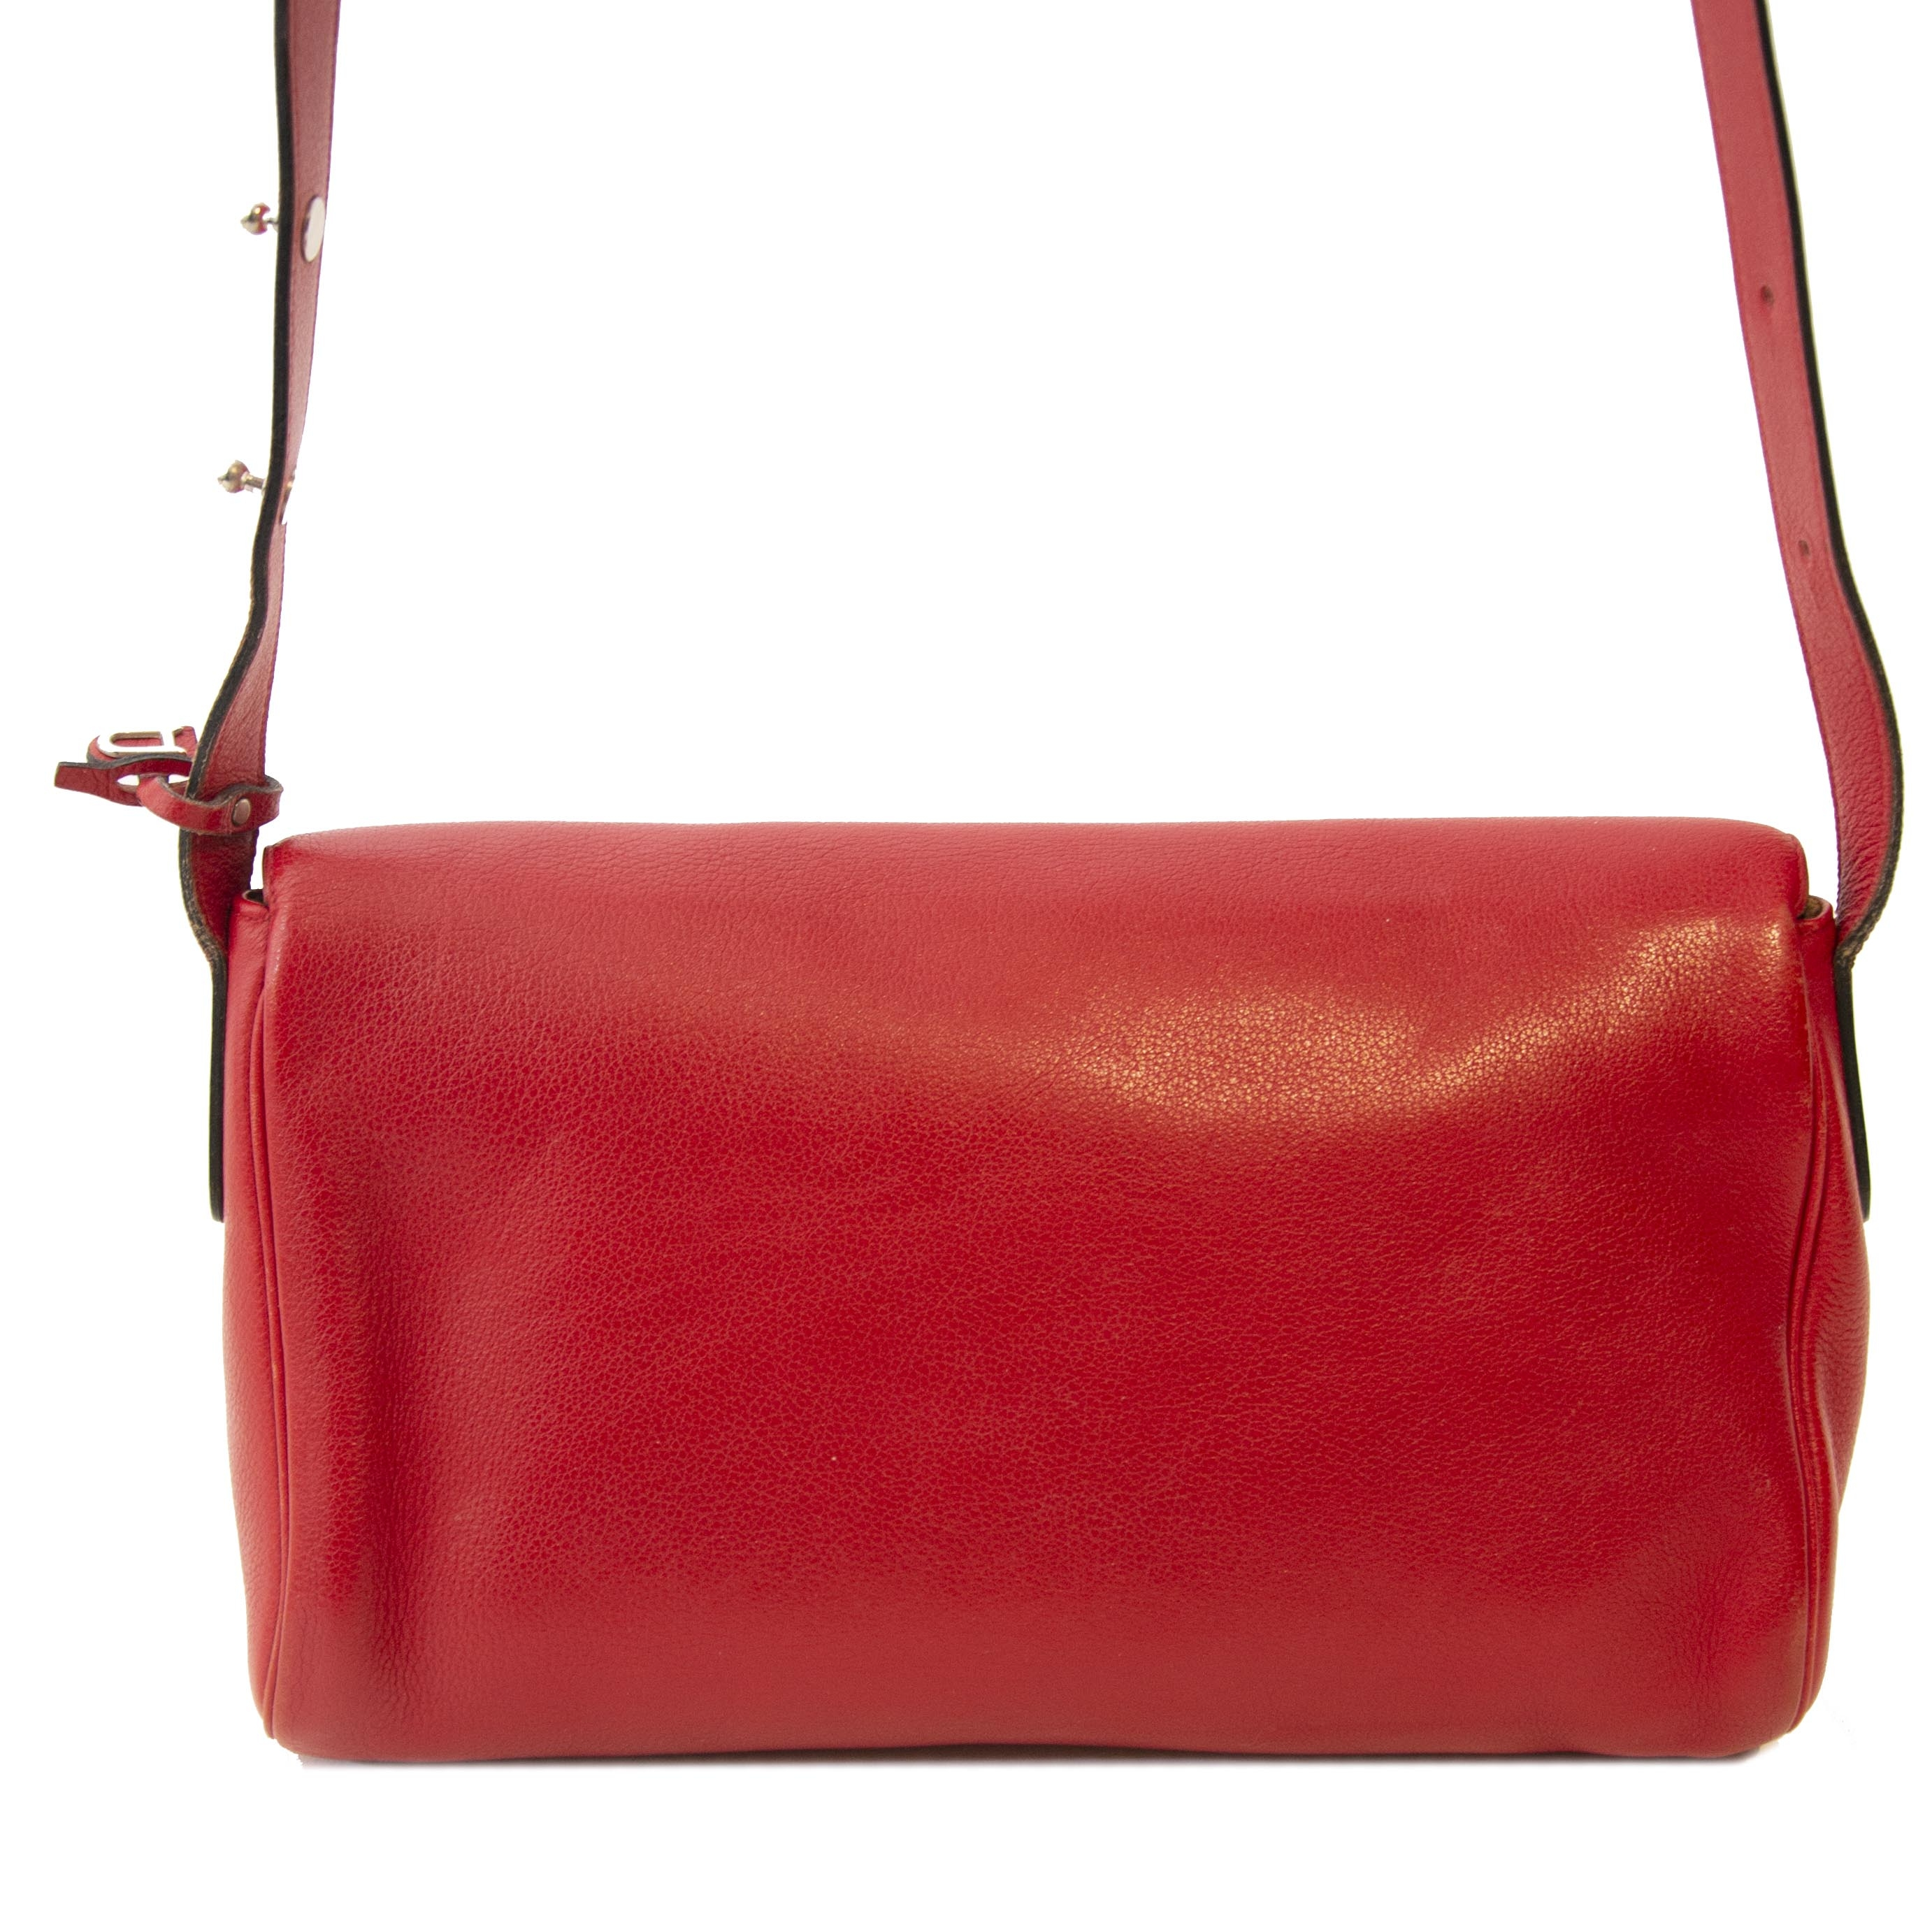 a2873c8f19f ... Authentieke tweedehands vintage Delvaux Passerelle Trotteur Red  Crossbody Bag koop online webshop LabelLOV